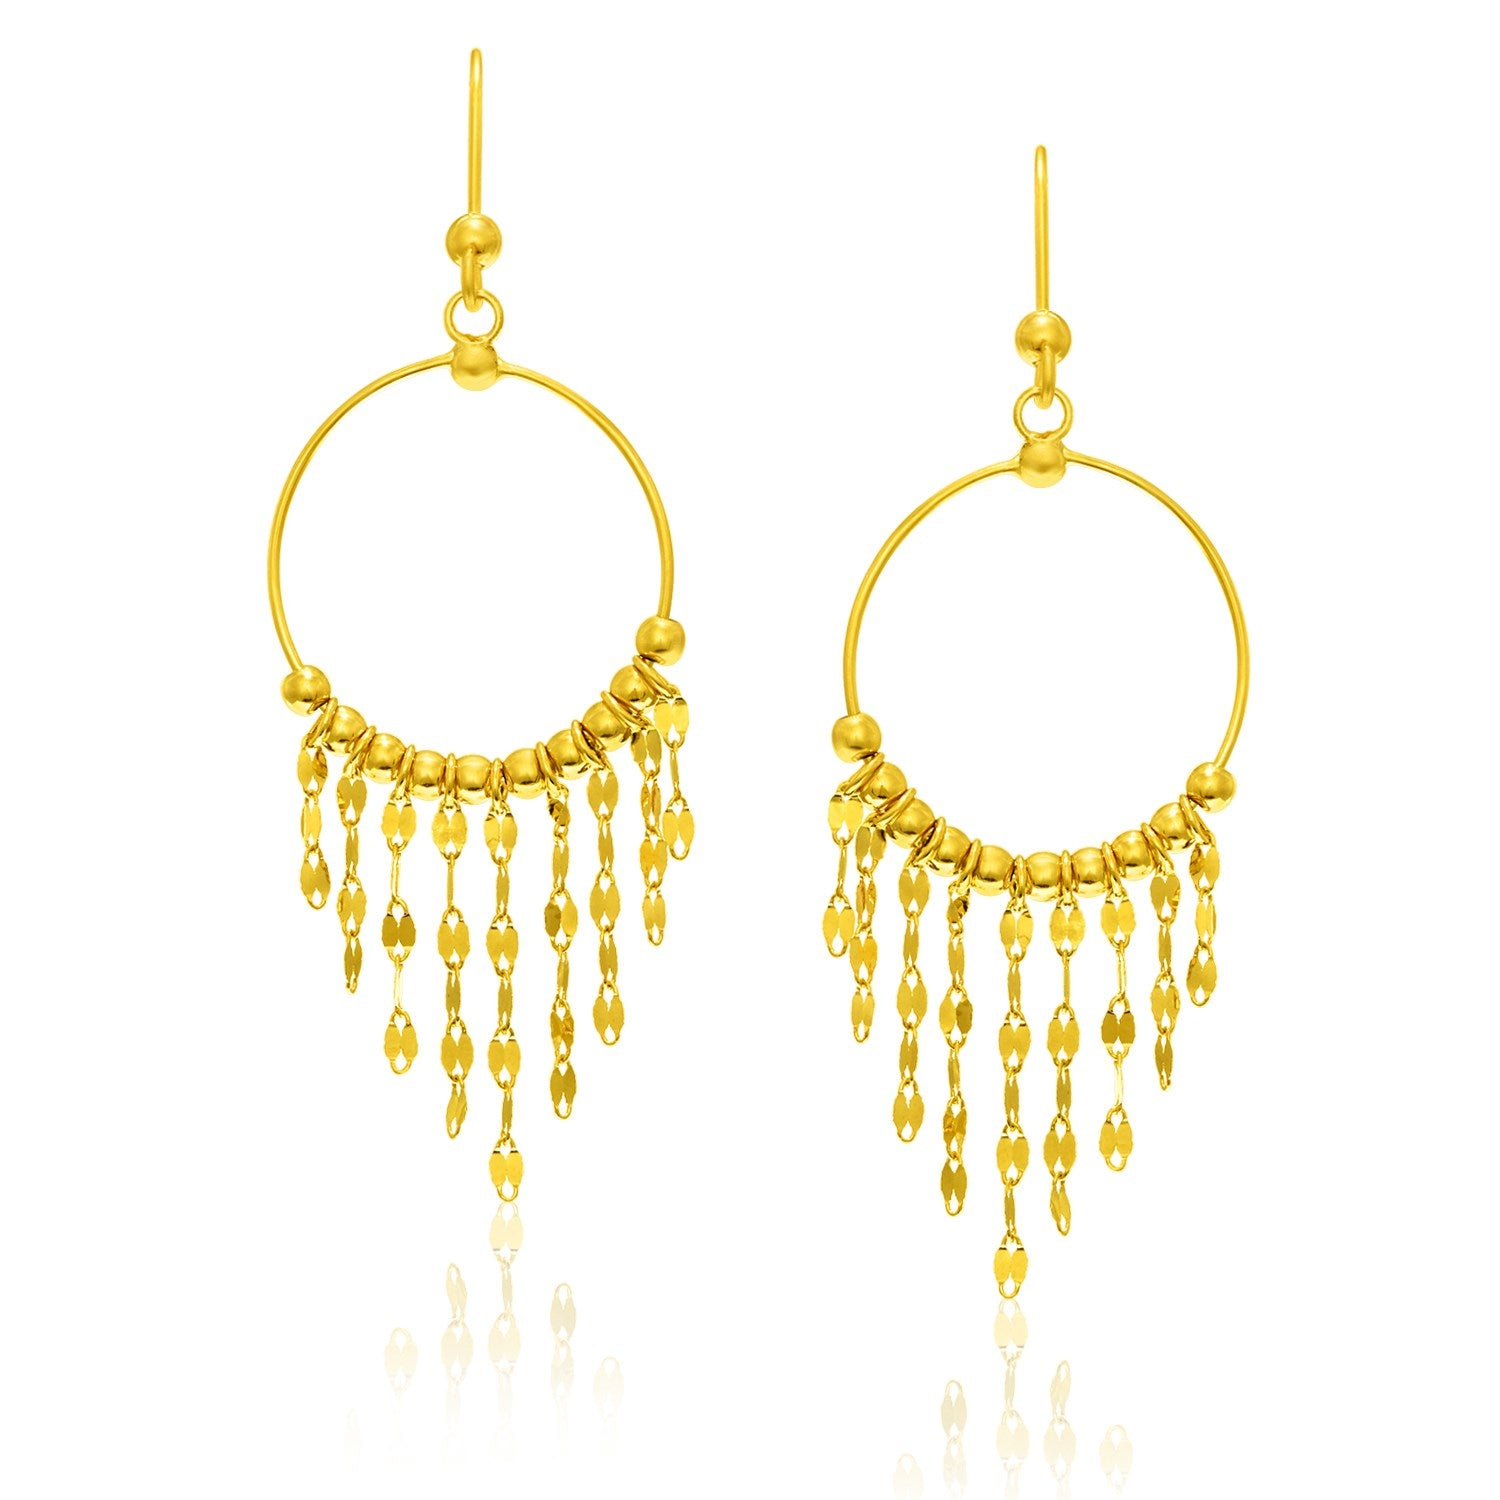 14K Yellow Gold Circle Dangling Earrings with Sequin Fringe